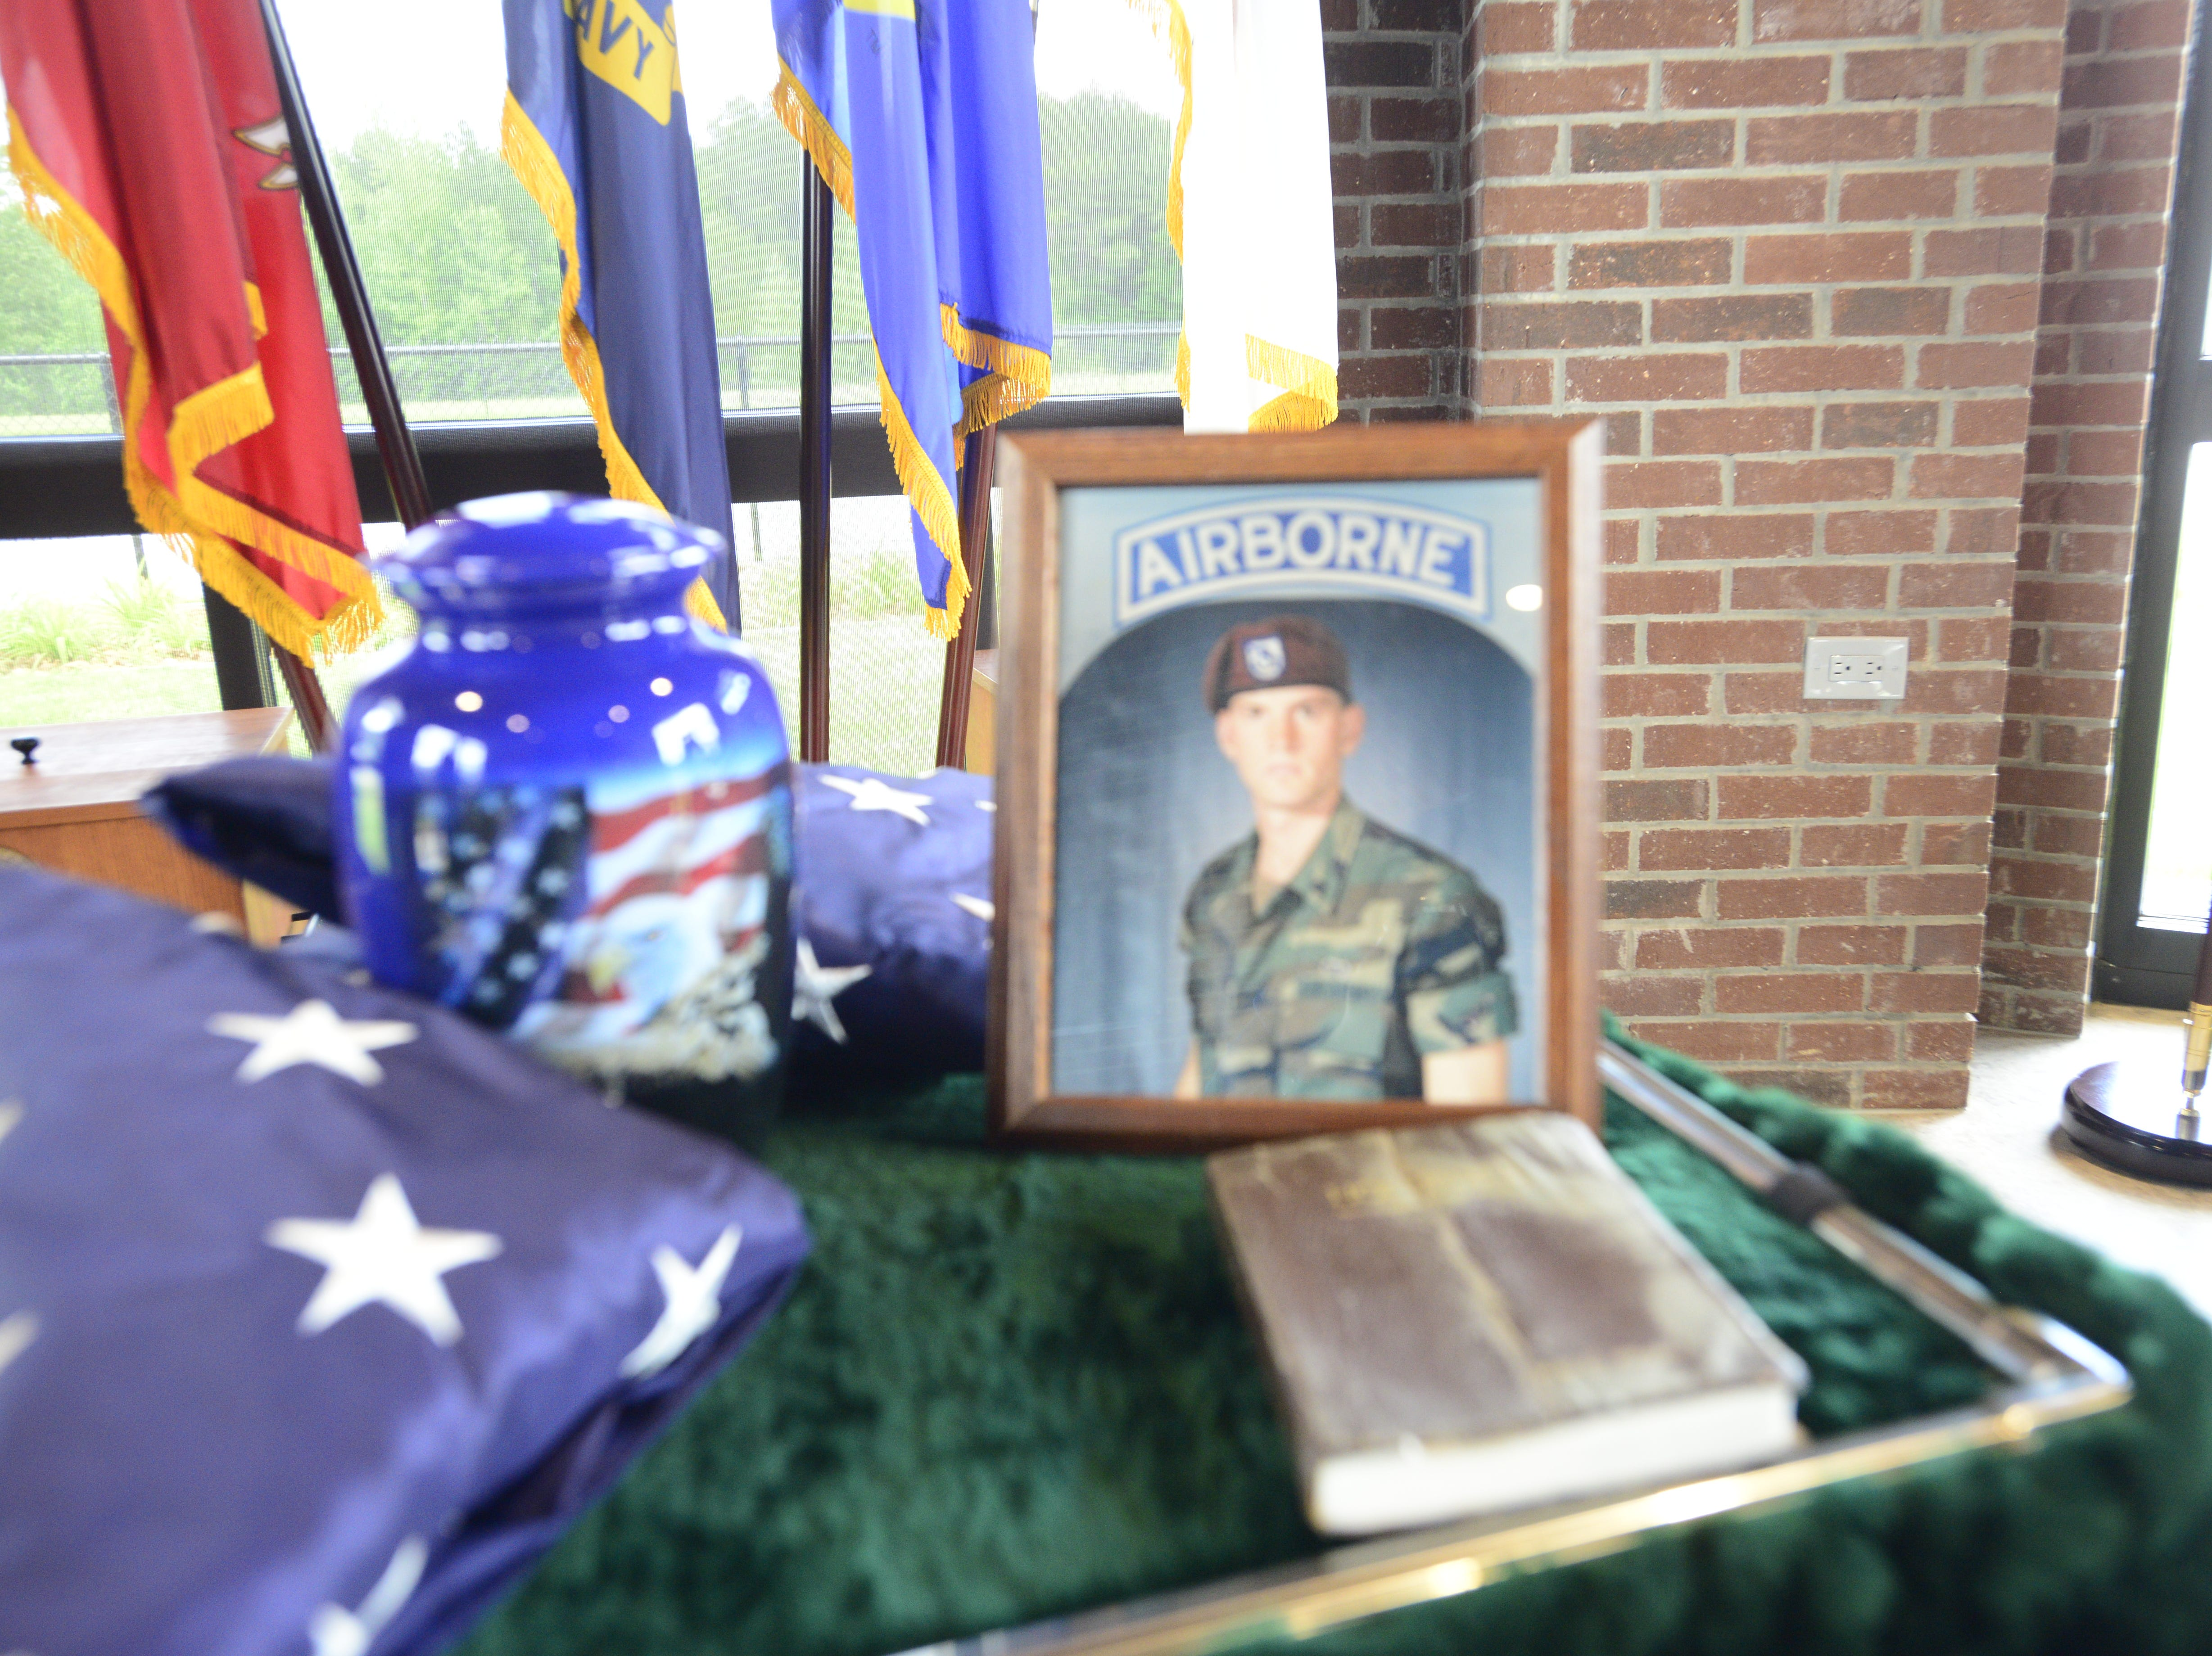 Robert Martin, a veteran who served in the U.S. Army 82nd Airborne unit and as a Memphis police officer, died May 2 at 47 years old. His funeral services were Monday at the Veteran Cemetery at Parkers Crossroads.